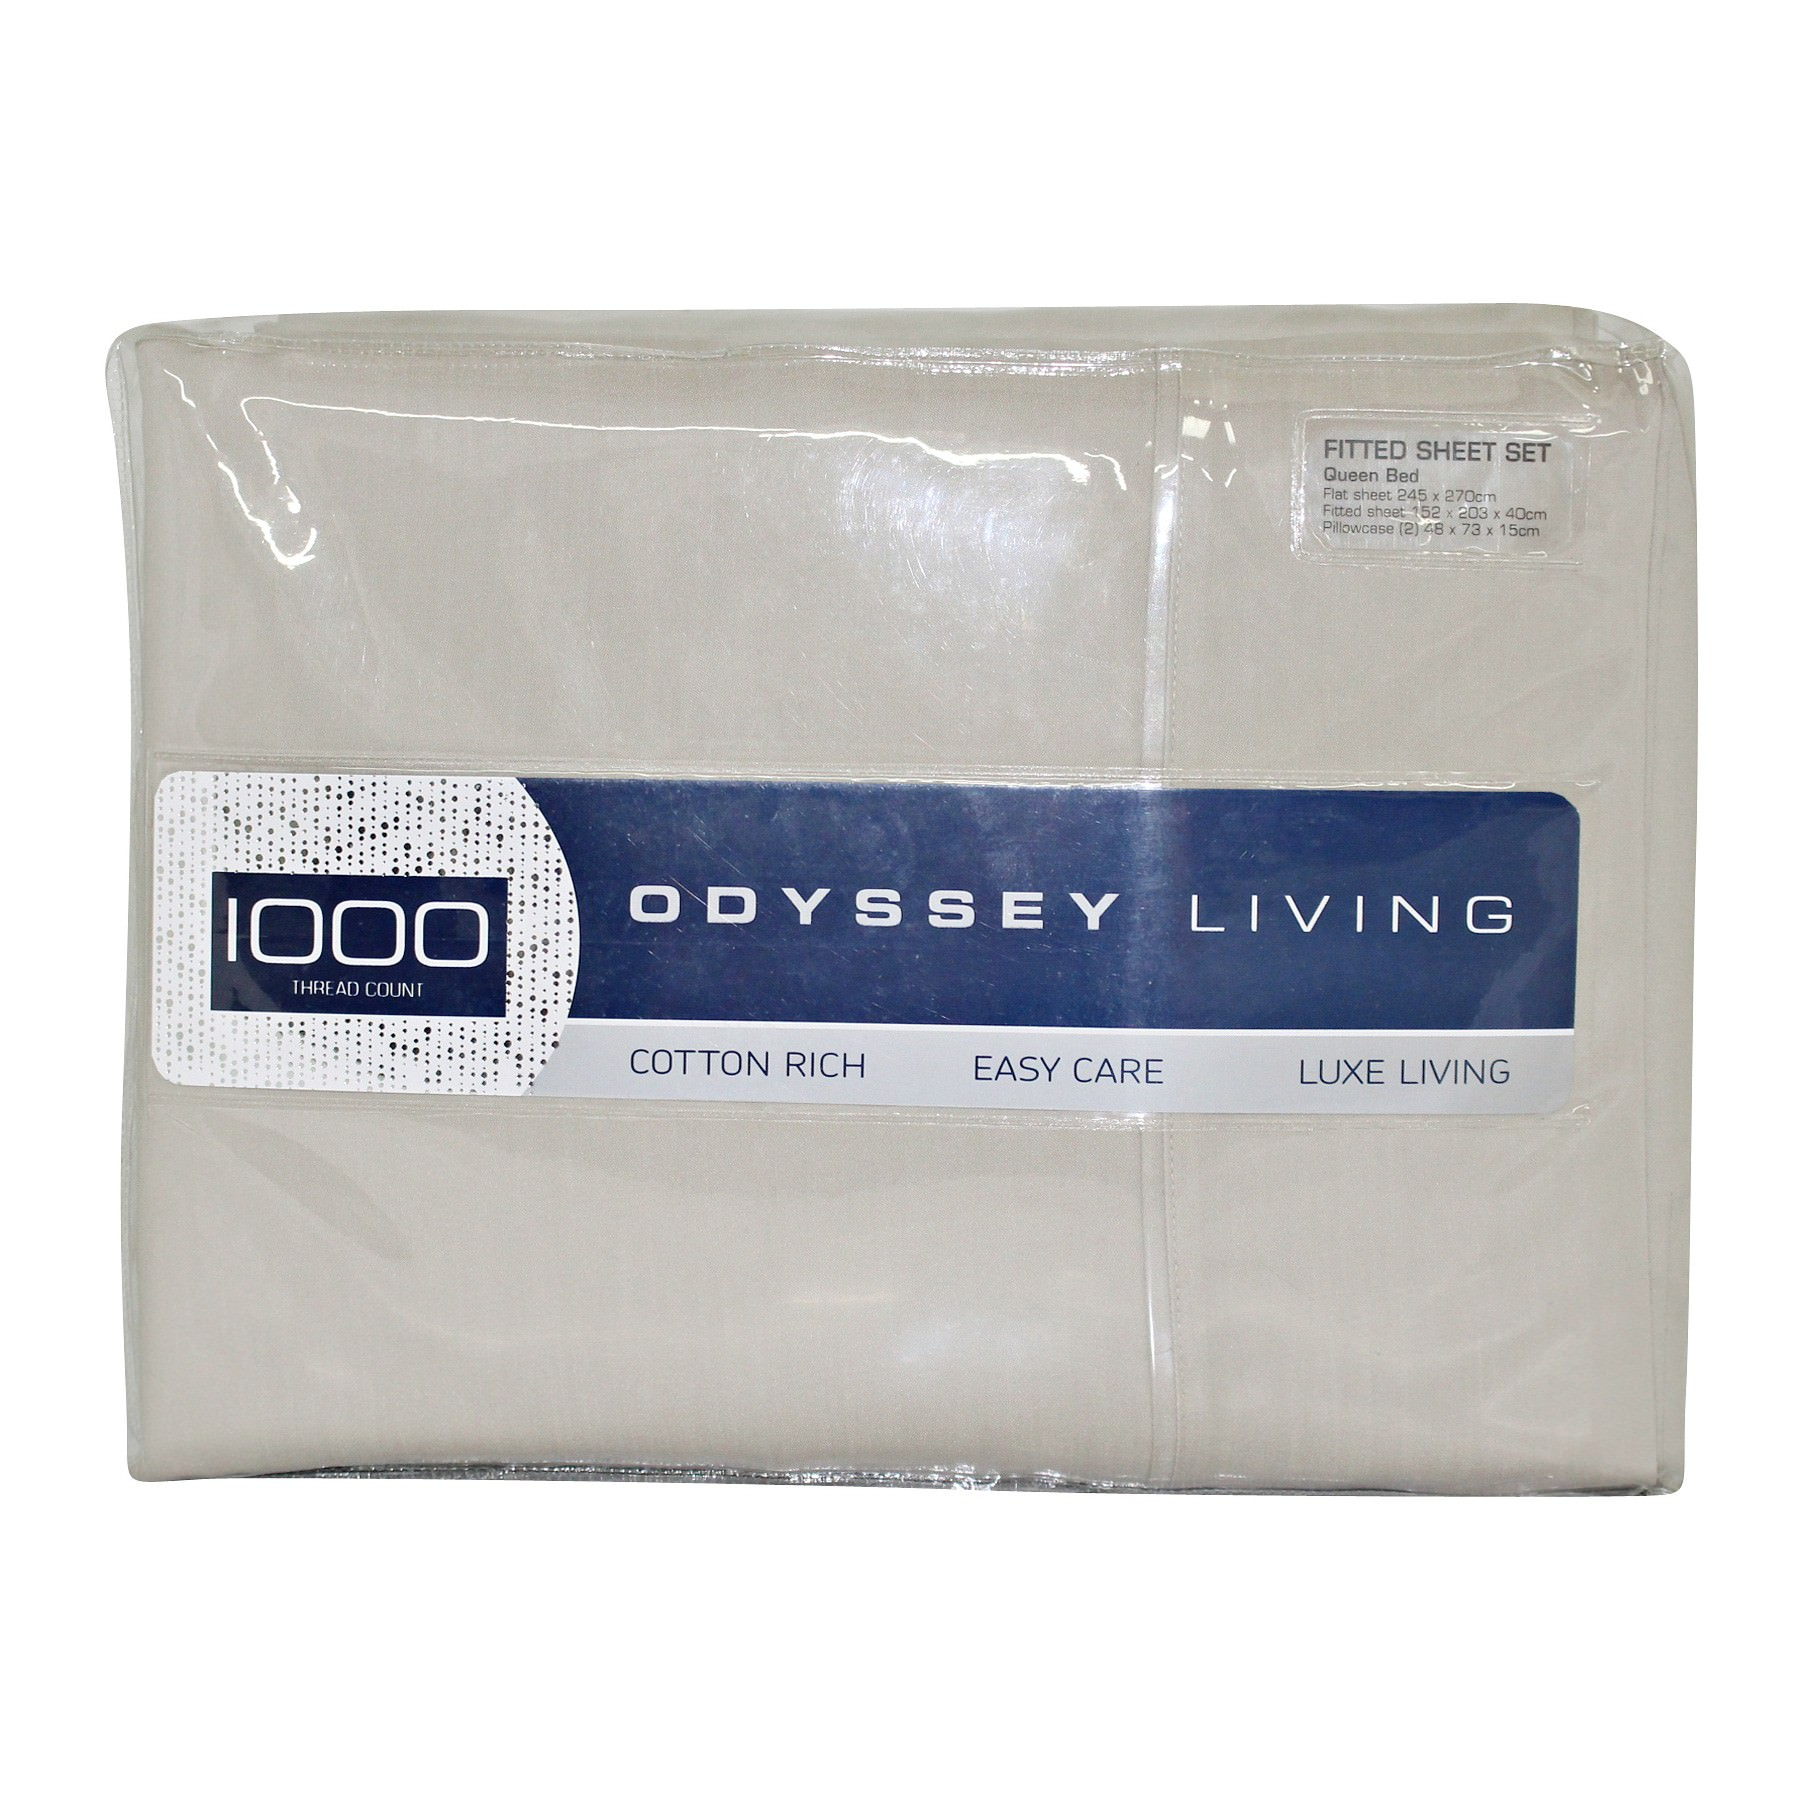 Odyssey Living 1000TC Cotton Rich Sheet Set, Double, Beige